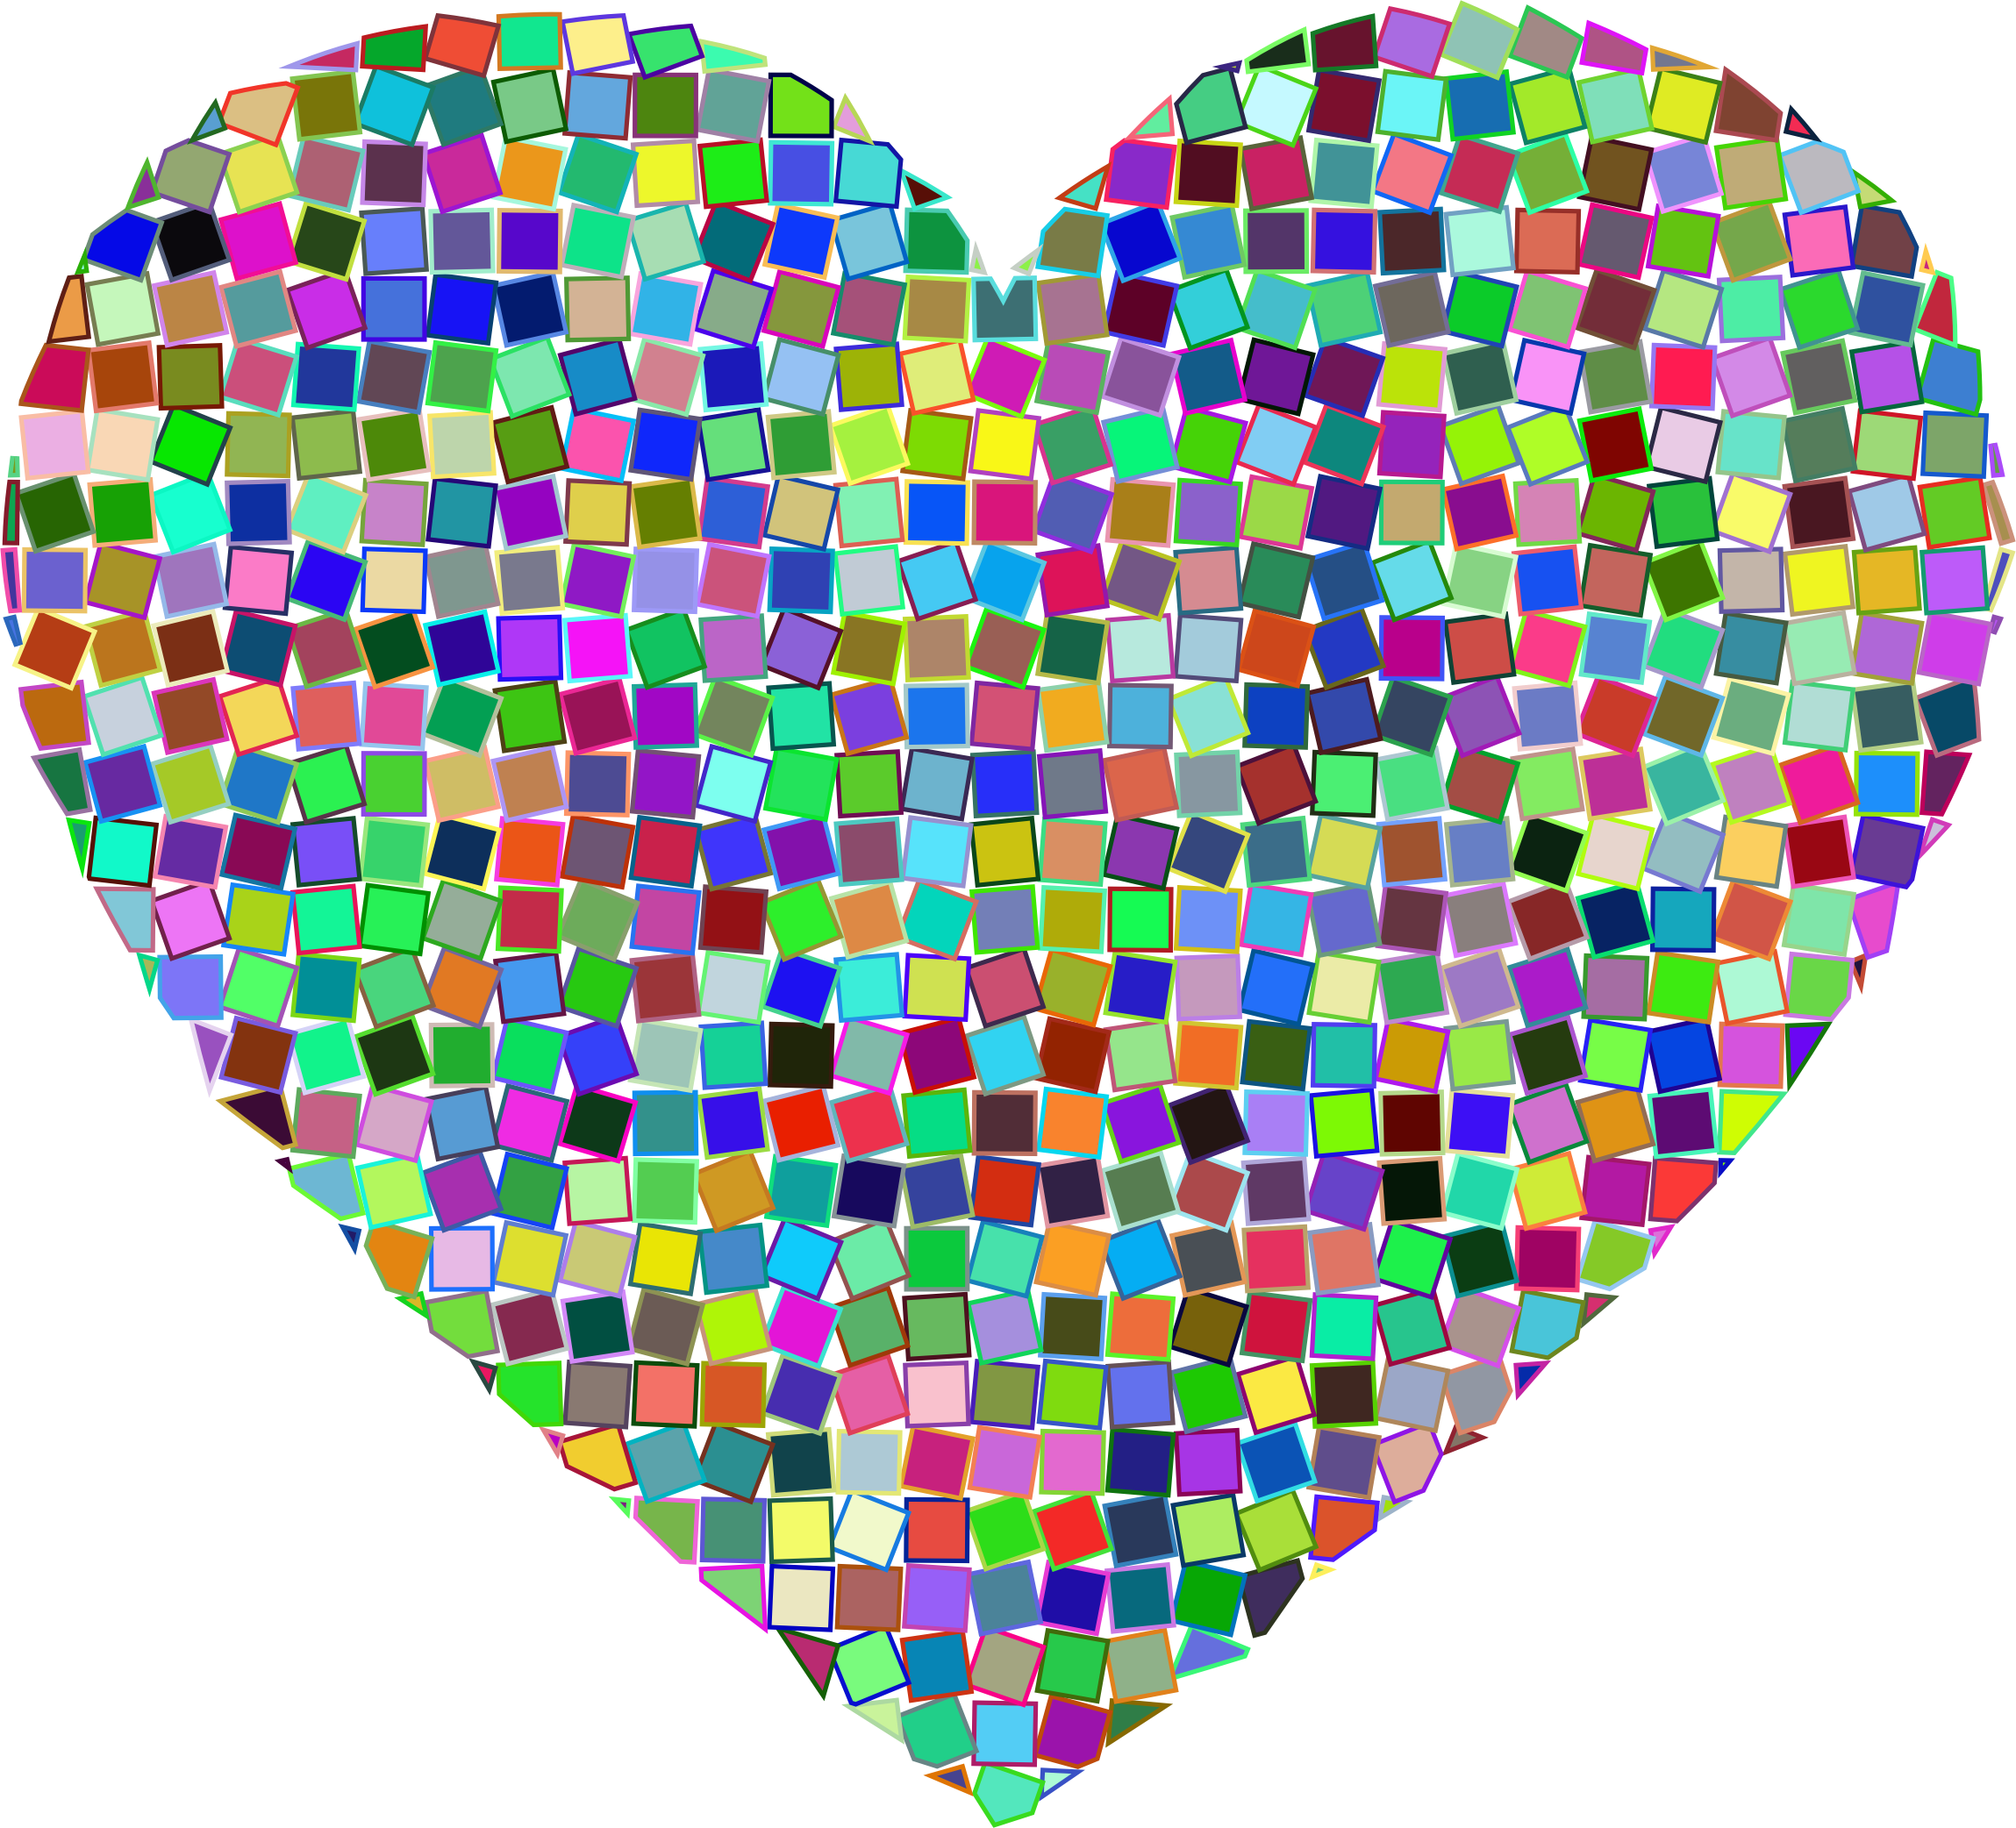 Prismatic Mosaic Heart 2 by GDJ